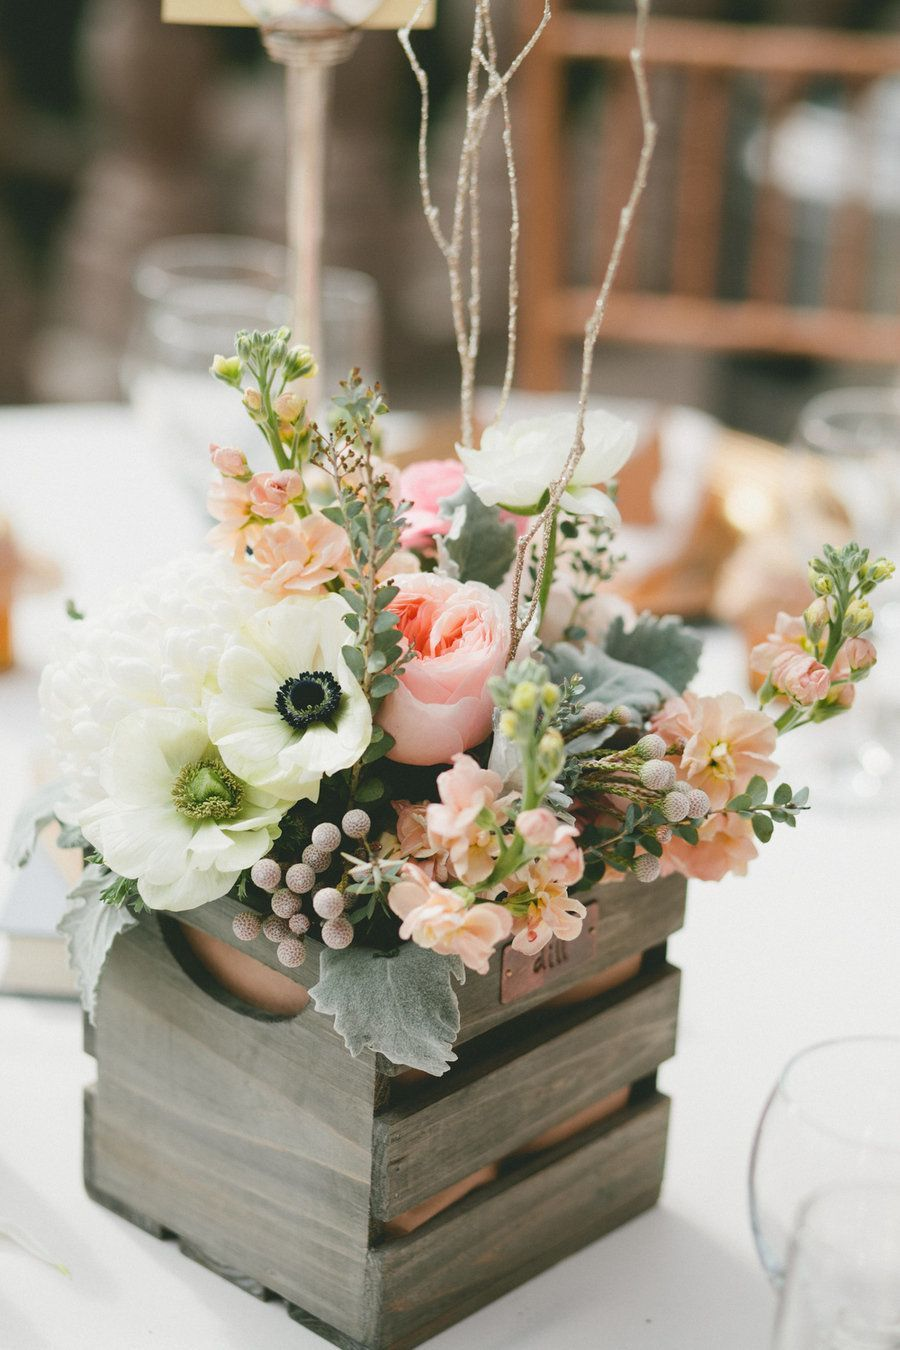 Small wooden crate turned into a centerpiece – Home Decorating Trends – Homedit